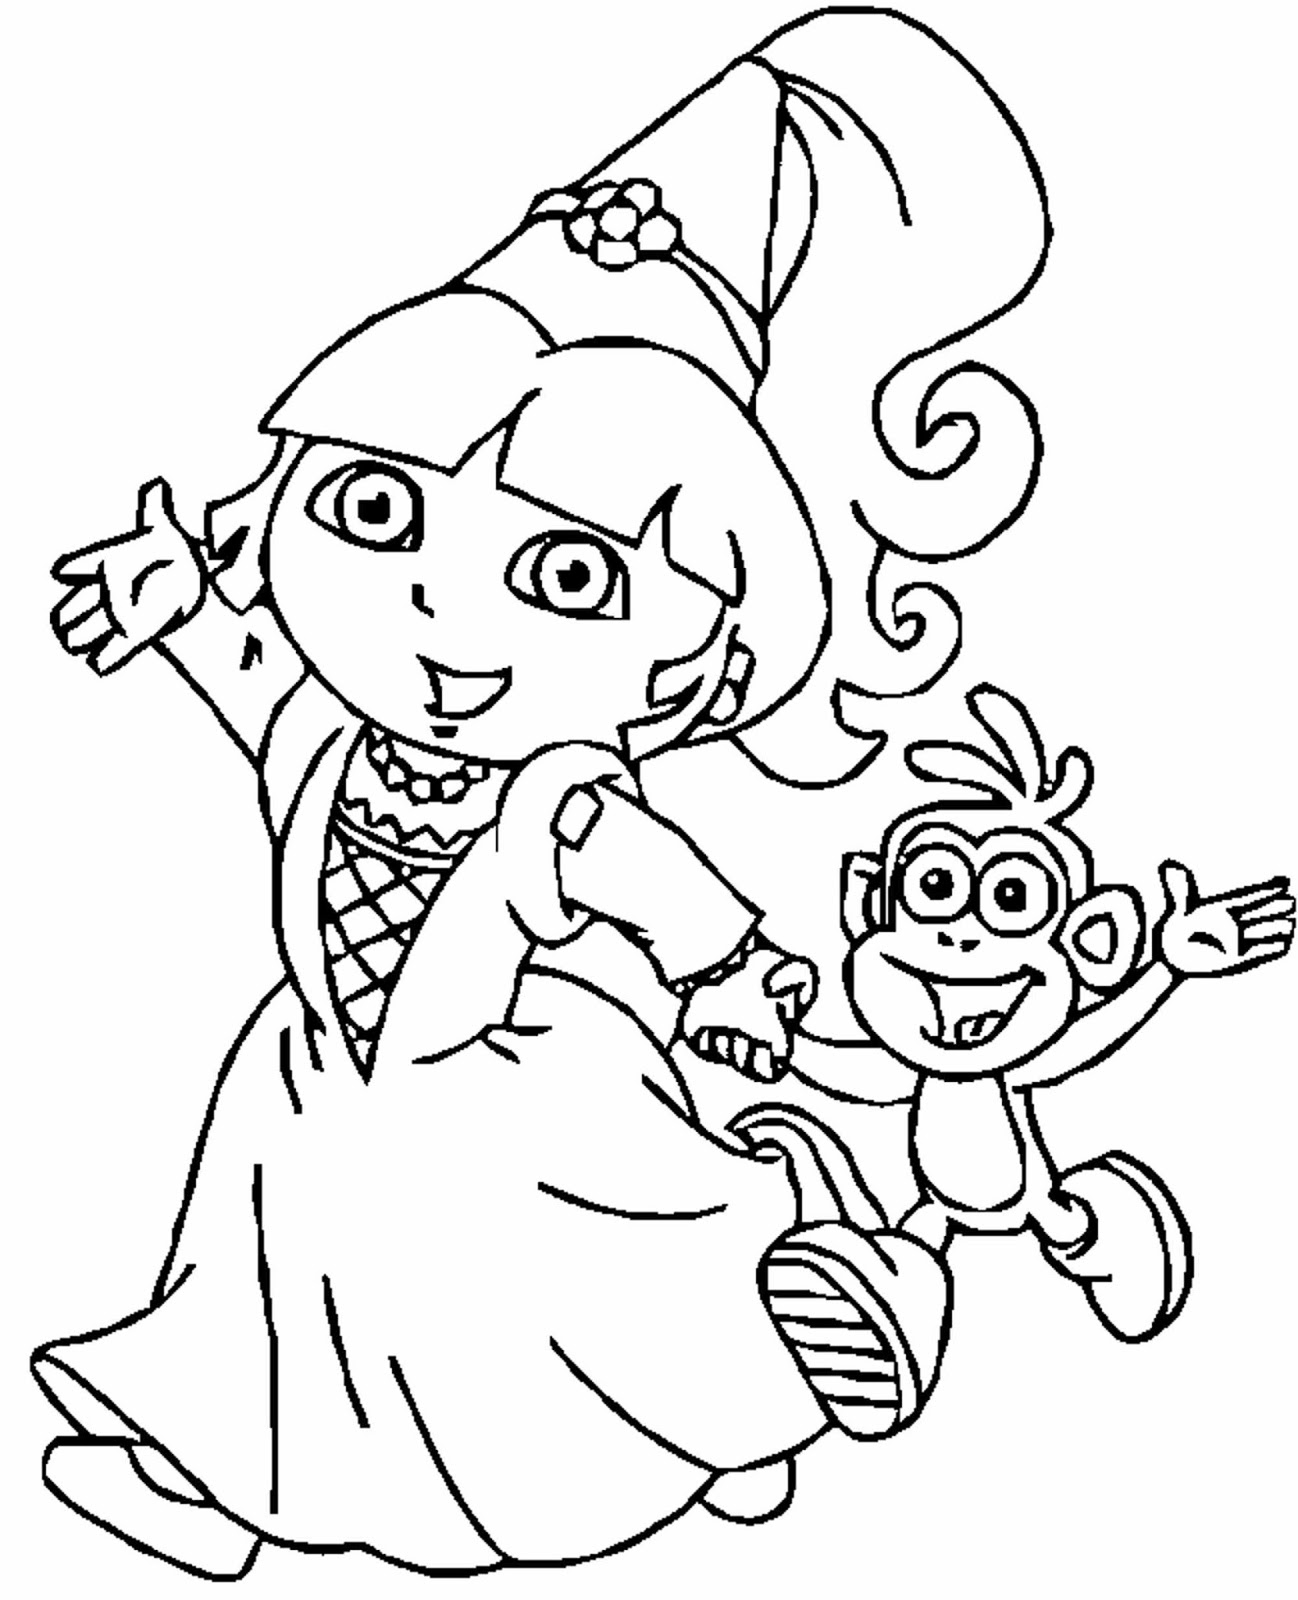 Nickelodeon Halloween Coloring Pages